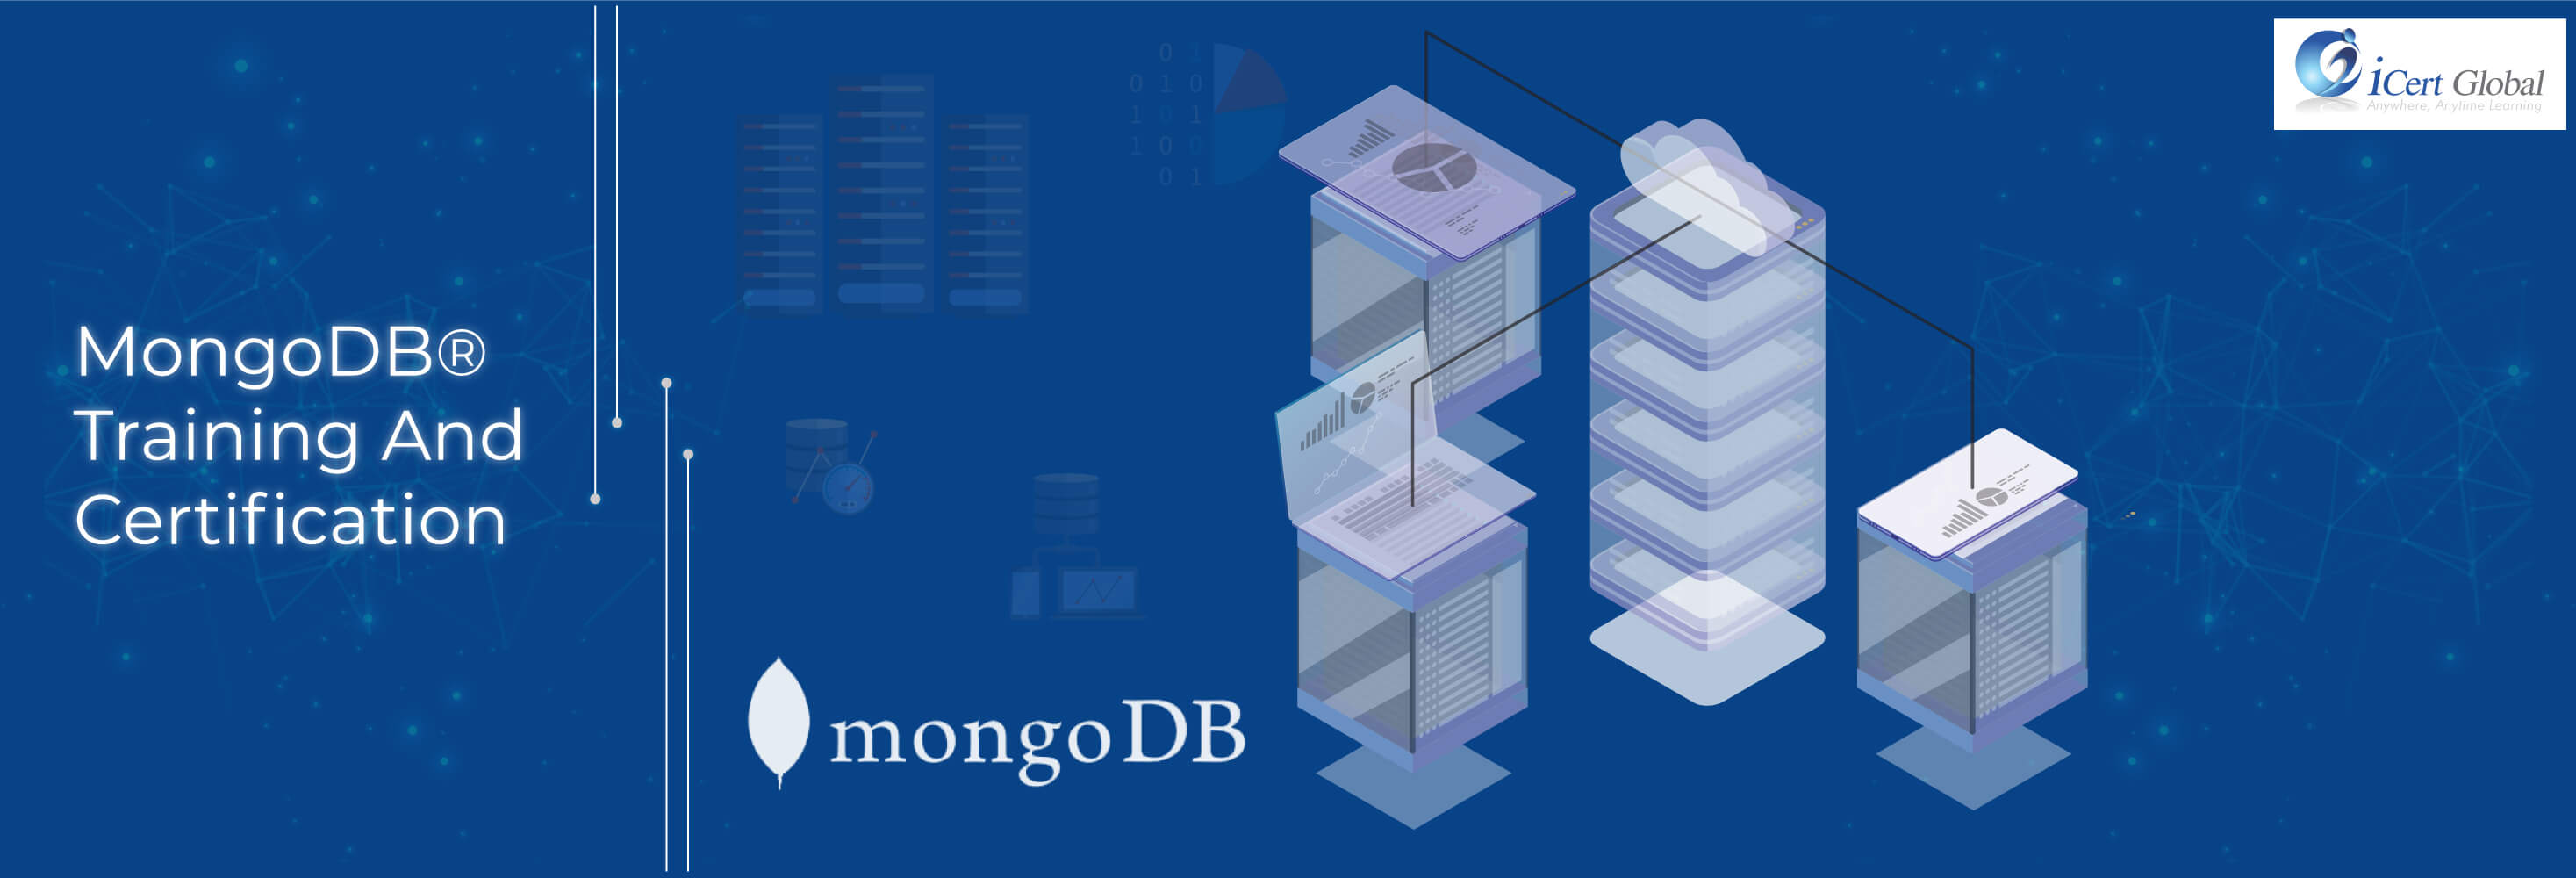 MongoDB Training and Certification